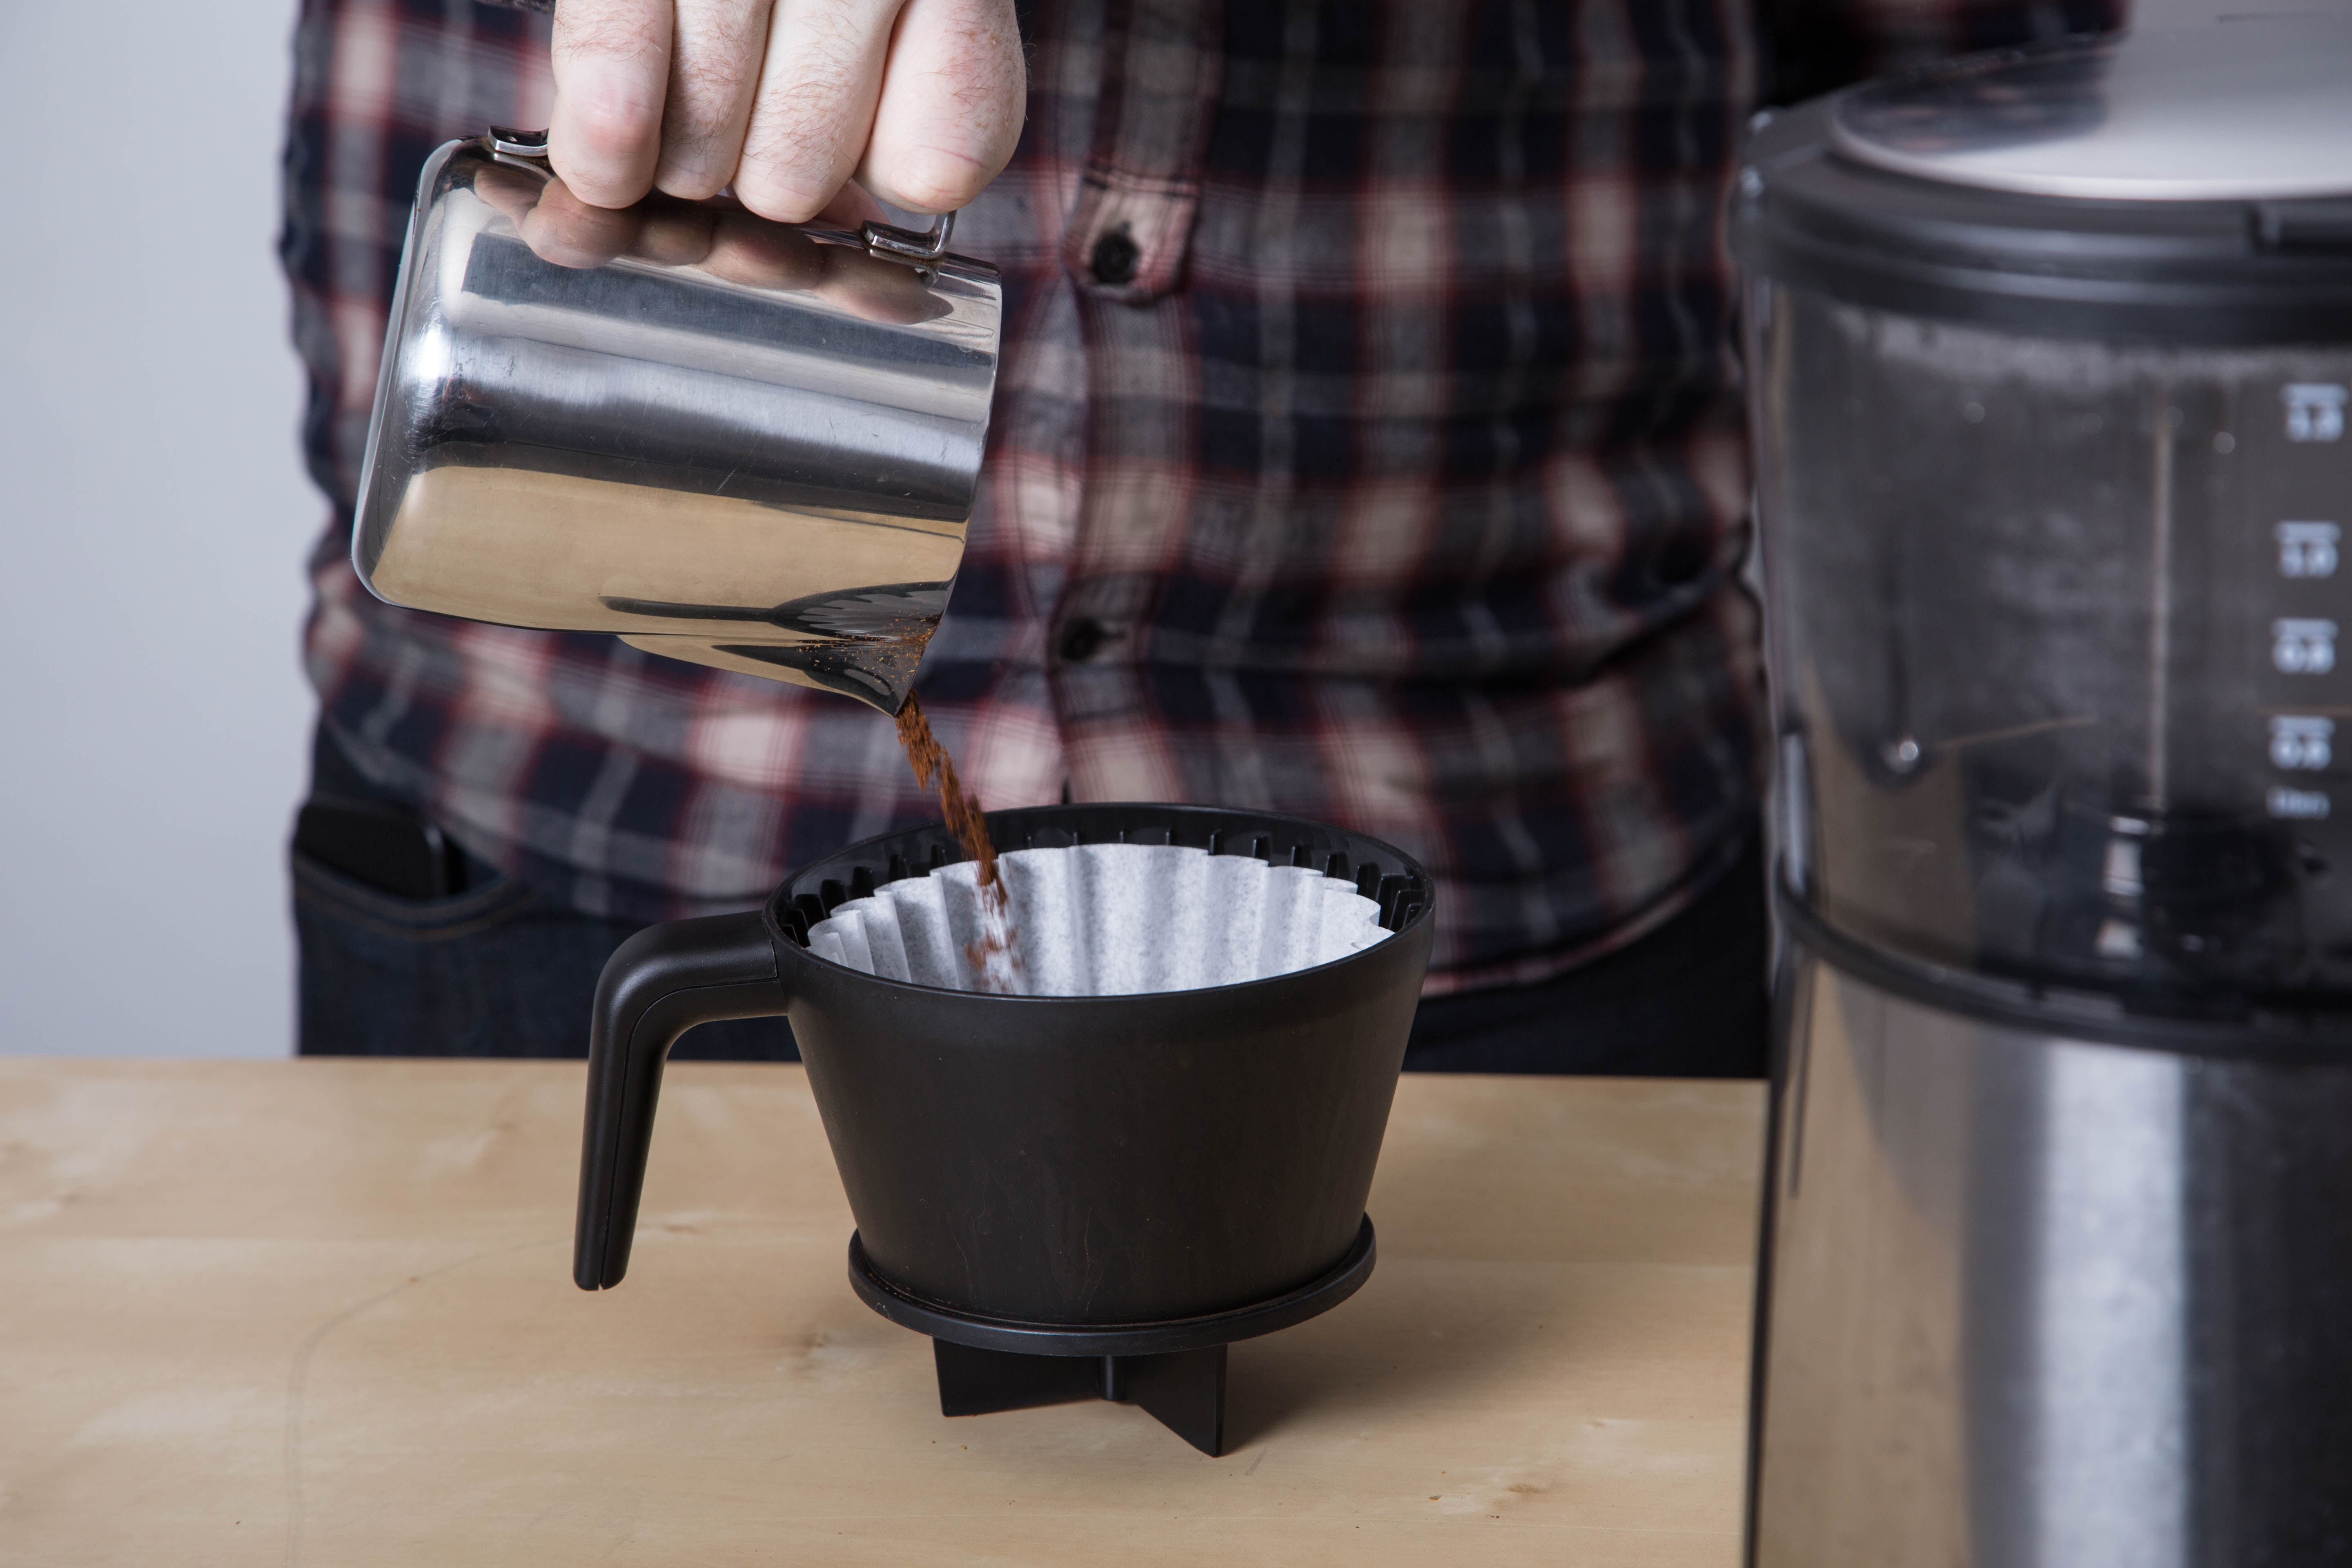 The Bonavita BV1900TS was chosen for this experiment because of its ability to brew consistently